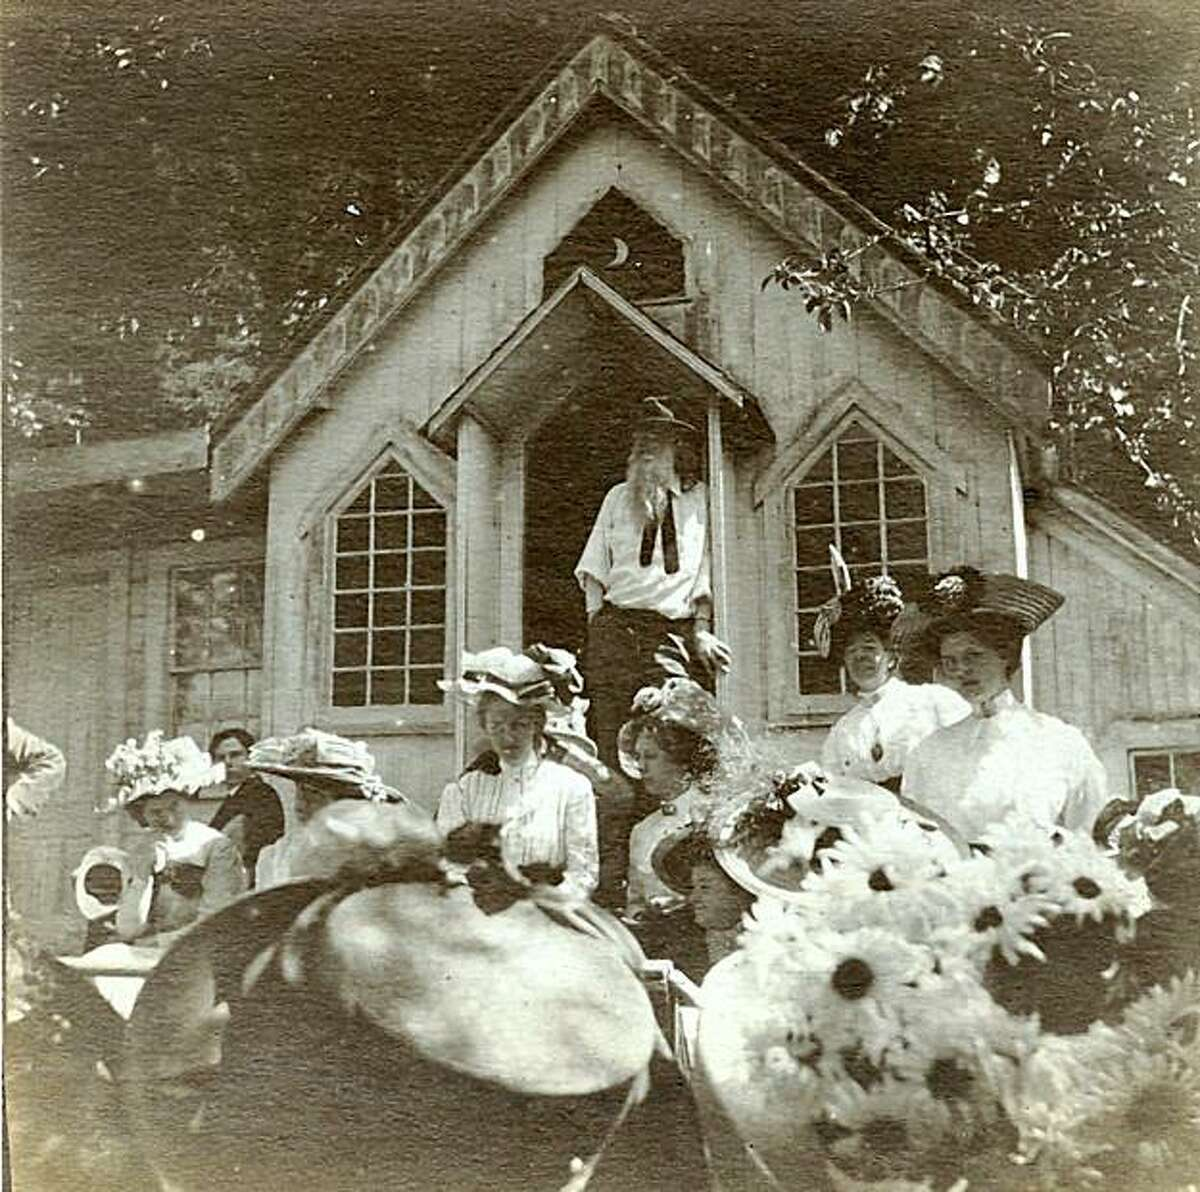 Joaquin Miller hosted countless parties at the Abbey, the cottage he built in the Oakland hills. Among his guests were Mark Twain, Robert Louis Stevenson and Walt Whitman. Photo taken around 1900.